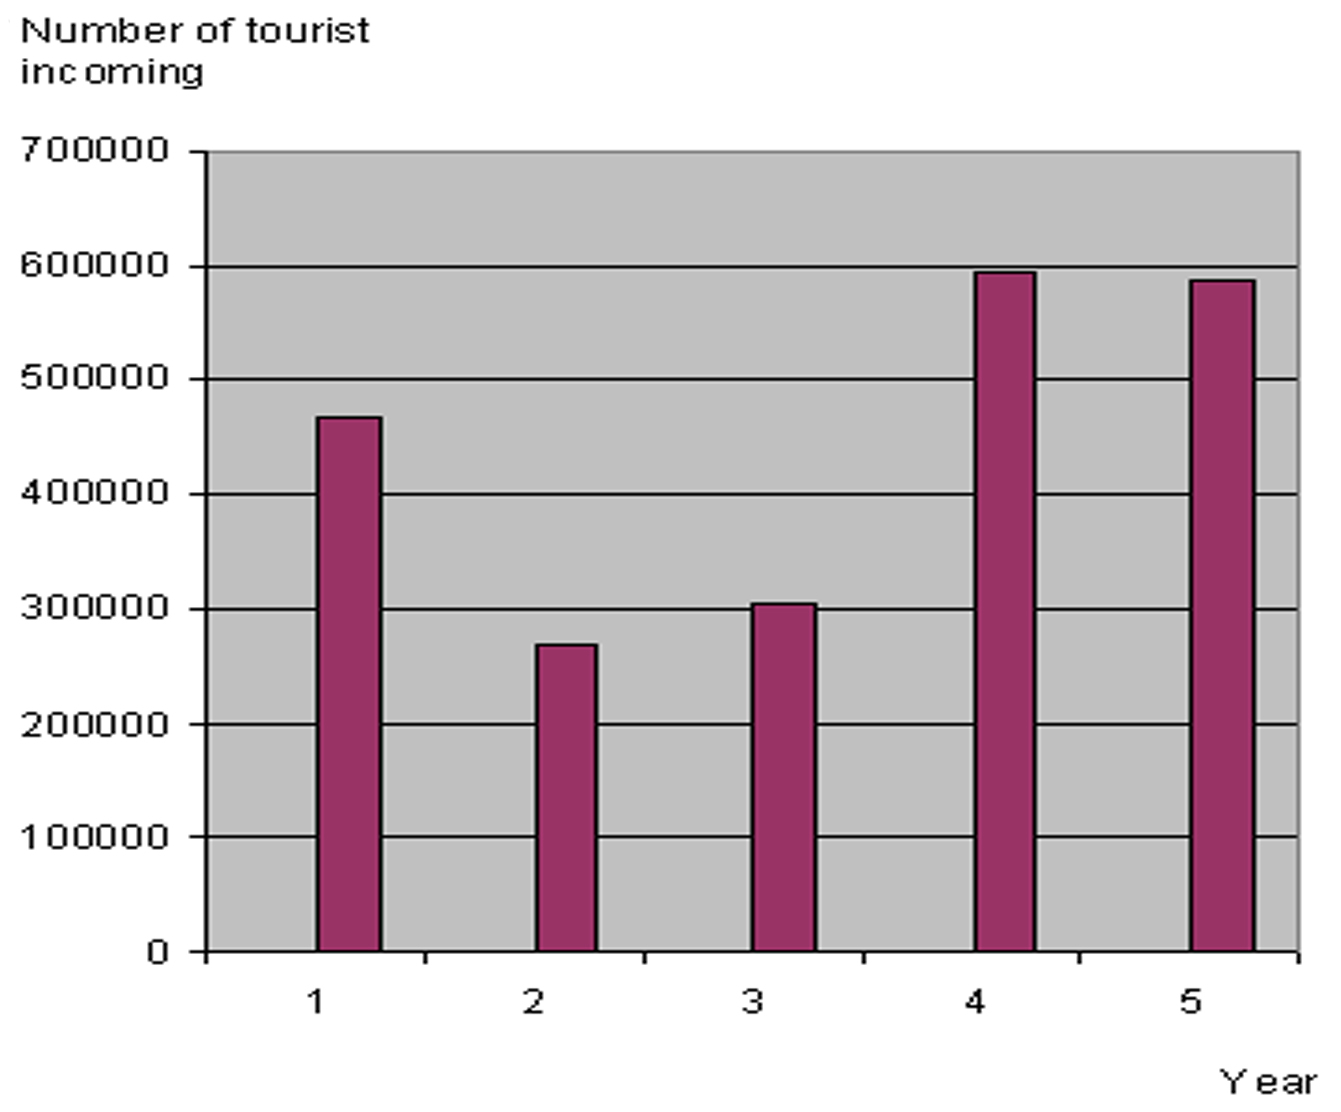 Figure-2.-Statistics-of-tourist-incoming-in-Bangladesh.jpg